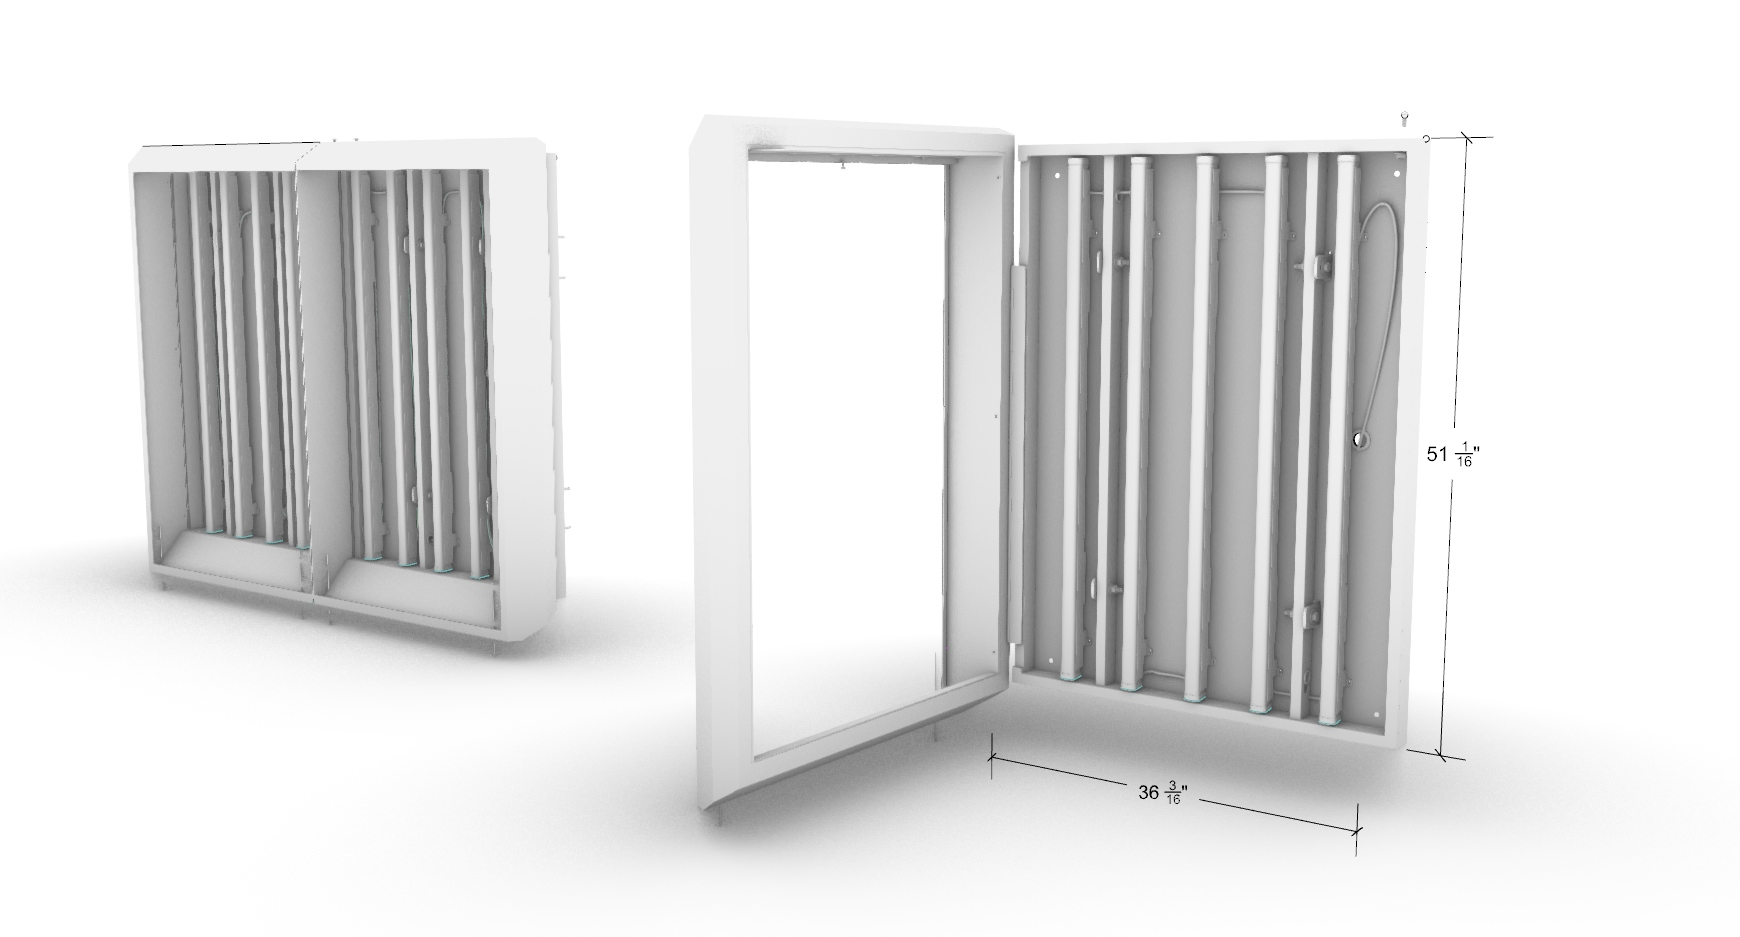 CAD Model of single and double-wide panels